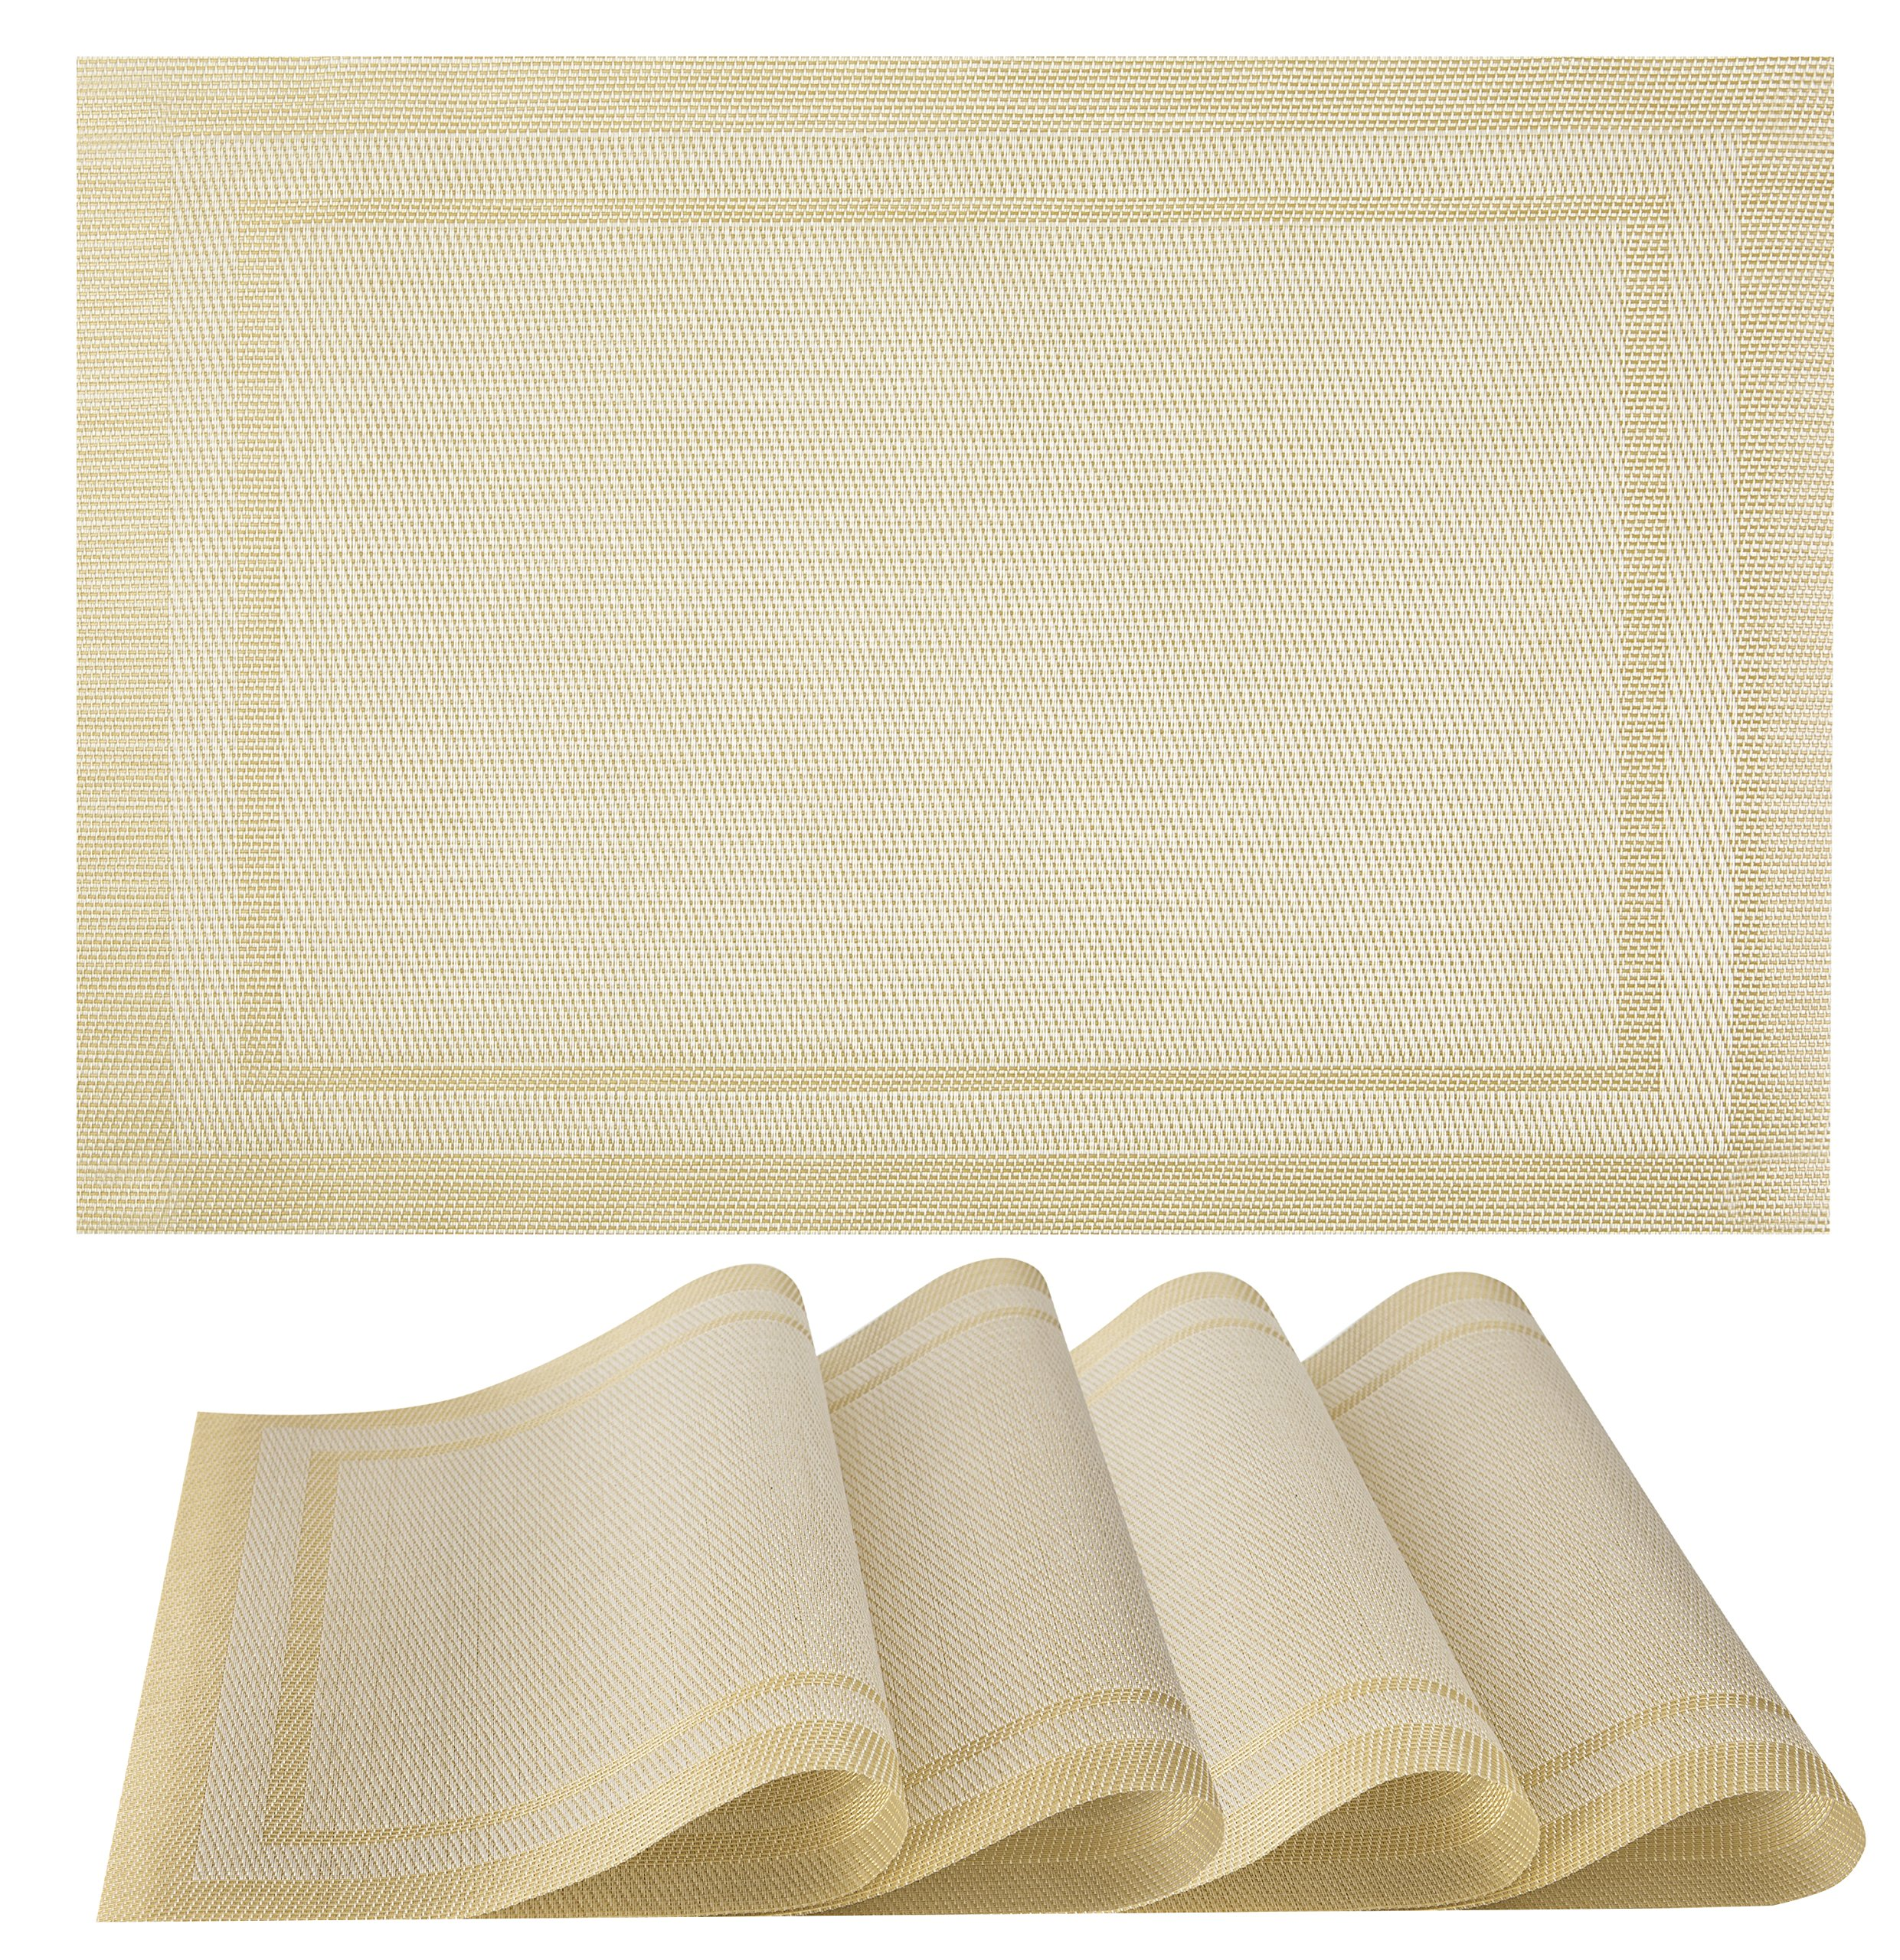 Placemats Set of 4| Vinyl PVC Placemat Table Mats | Non slip | Heat Resistant (Beige) - A STYLISH ELEMENT TO YOUR TABLE SPREAD: Our beautiful set of 4 placemats will jazz up your dining tables, we have a wide variety of multiple colours and designs to choose from which makes them the perfect decoration piece for Christmas parties and for your festive table. HIGH QUALITY MATERIALS: KeKe placemats will protect your table from stains and scratches; they can be rolled up or flatted easy. Our mats are made out of 70% PVC and 30% polyester which are environmentally friendly. Out table mats are very durable, non-slip, no fading and heat resistant. They are safe to use, simple and easy to keep clean. THE PERFECT SIZE FOR ALL TABLES: Each mat measures L46xW30cm, Suitable for entertaining, home parties, family gatherings, everyday dining, restaurants or coffee shops. Our placemats come as a pack of 4 weighing 0.4KG. Each mat approx 1 millimetres thickness; stack them together for easy and minimal storage space. - placemats, kitchen-dining-room-table-linens, kitchen-dining-room - A1IYbHcnHJL -